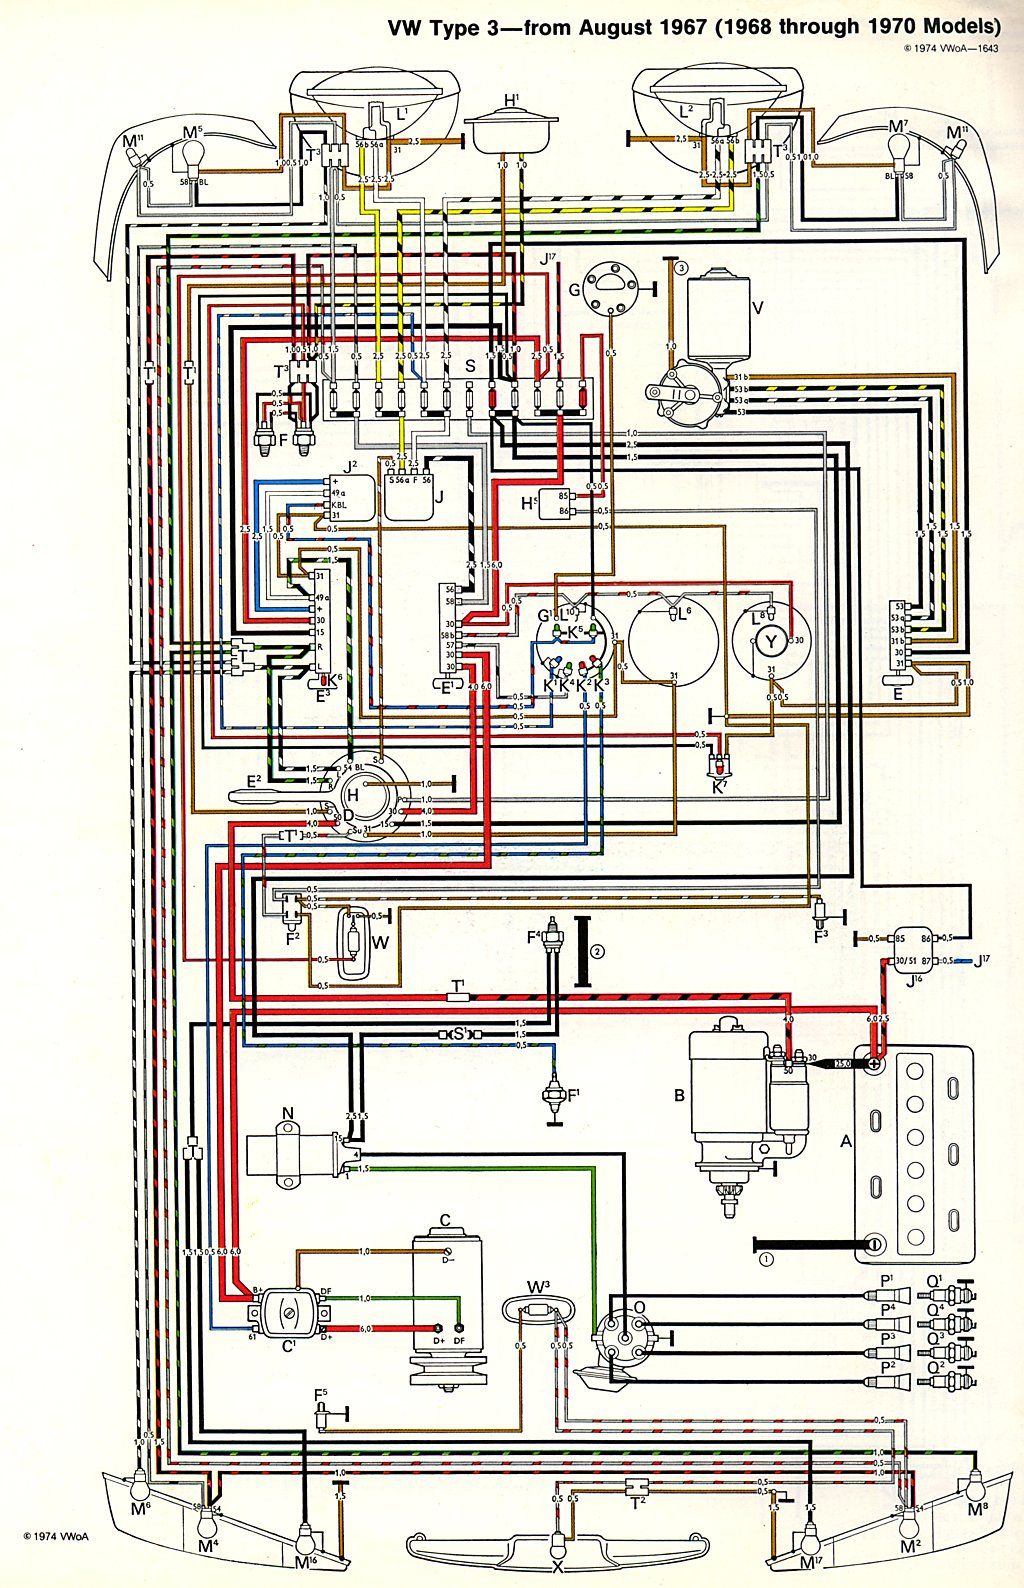 type3_6870 vw thing wiring diagram 1974 beetle heater diagram \u2022 wiring 1971 vw bus wiring diagram at cos-gaming.co